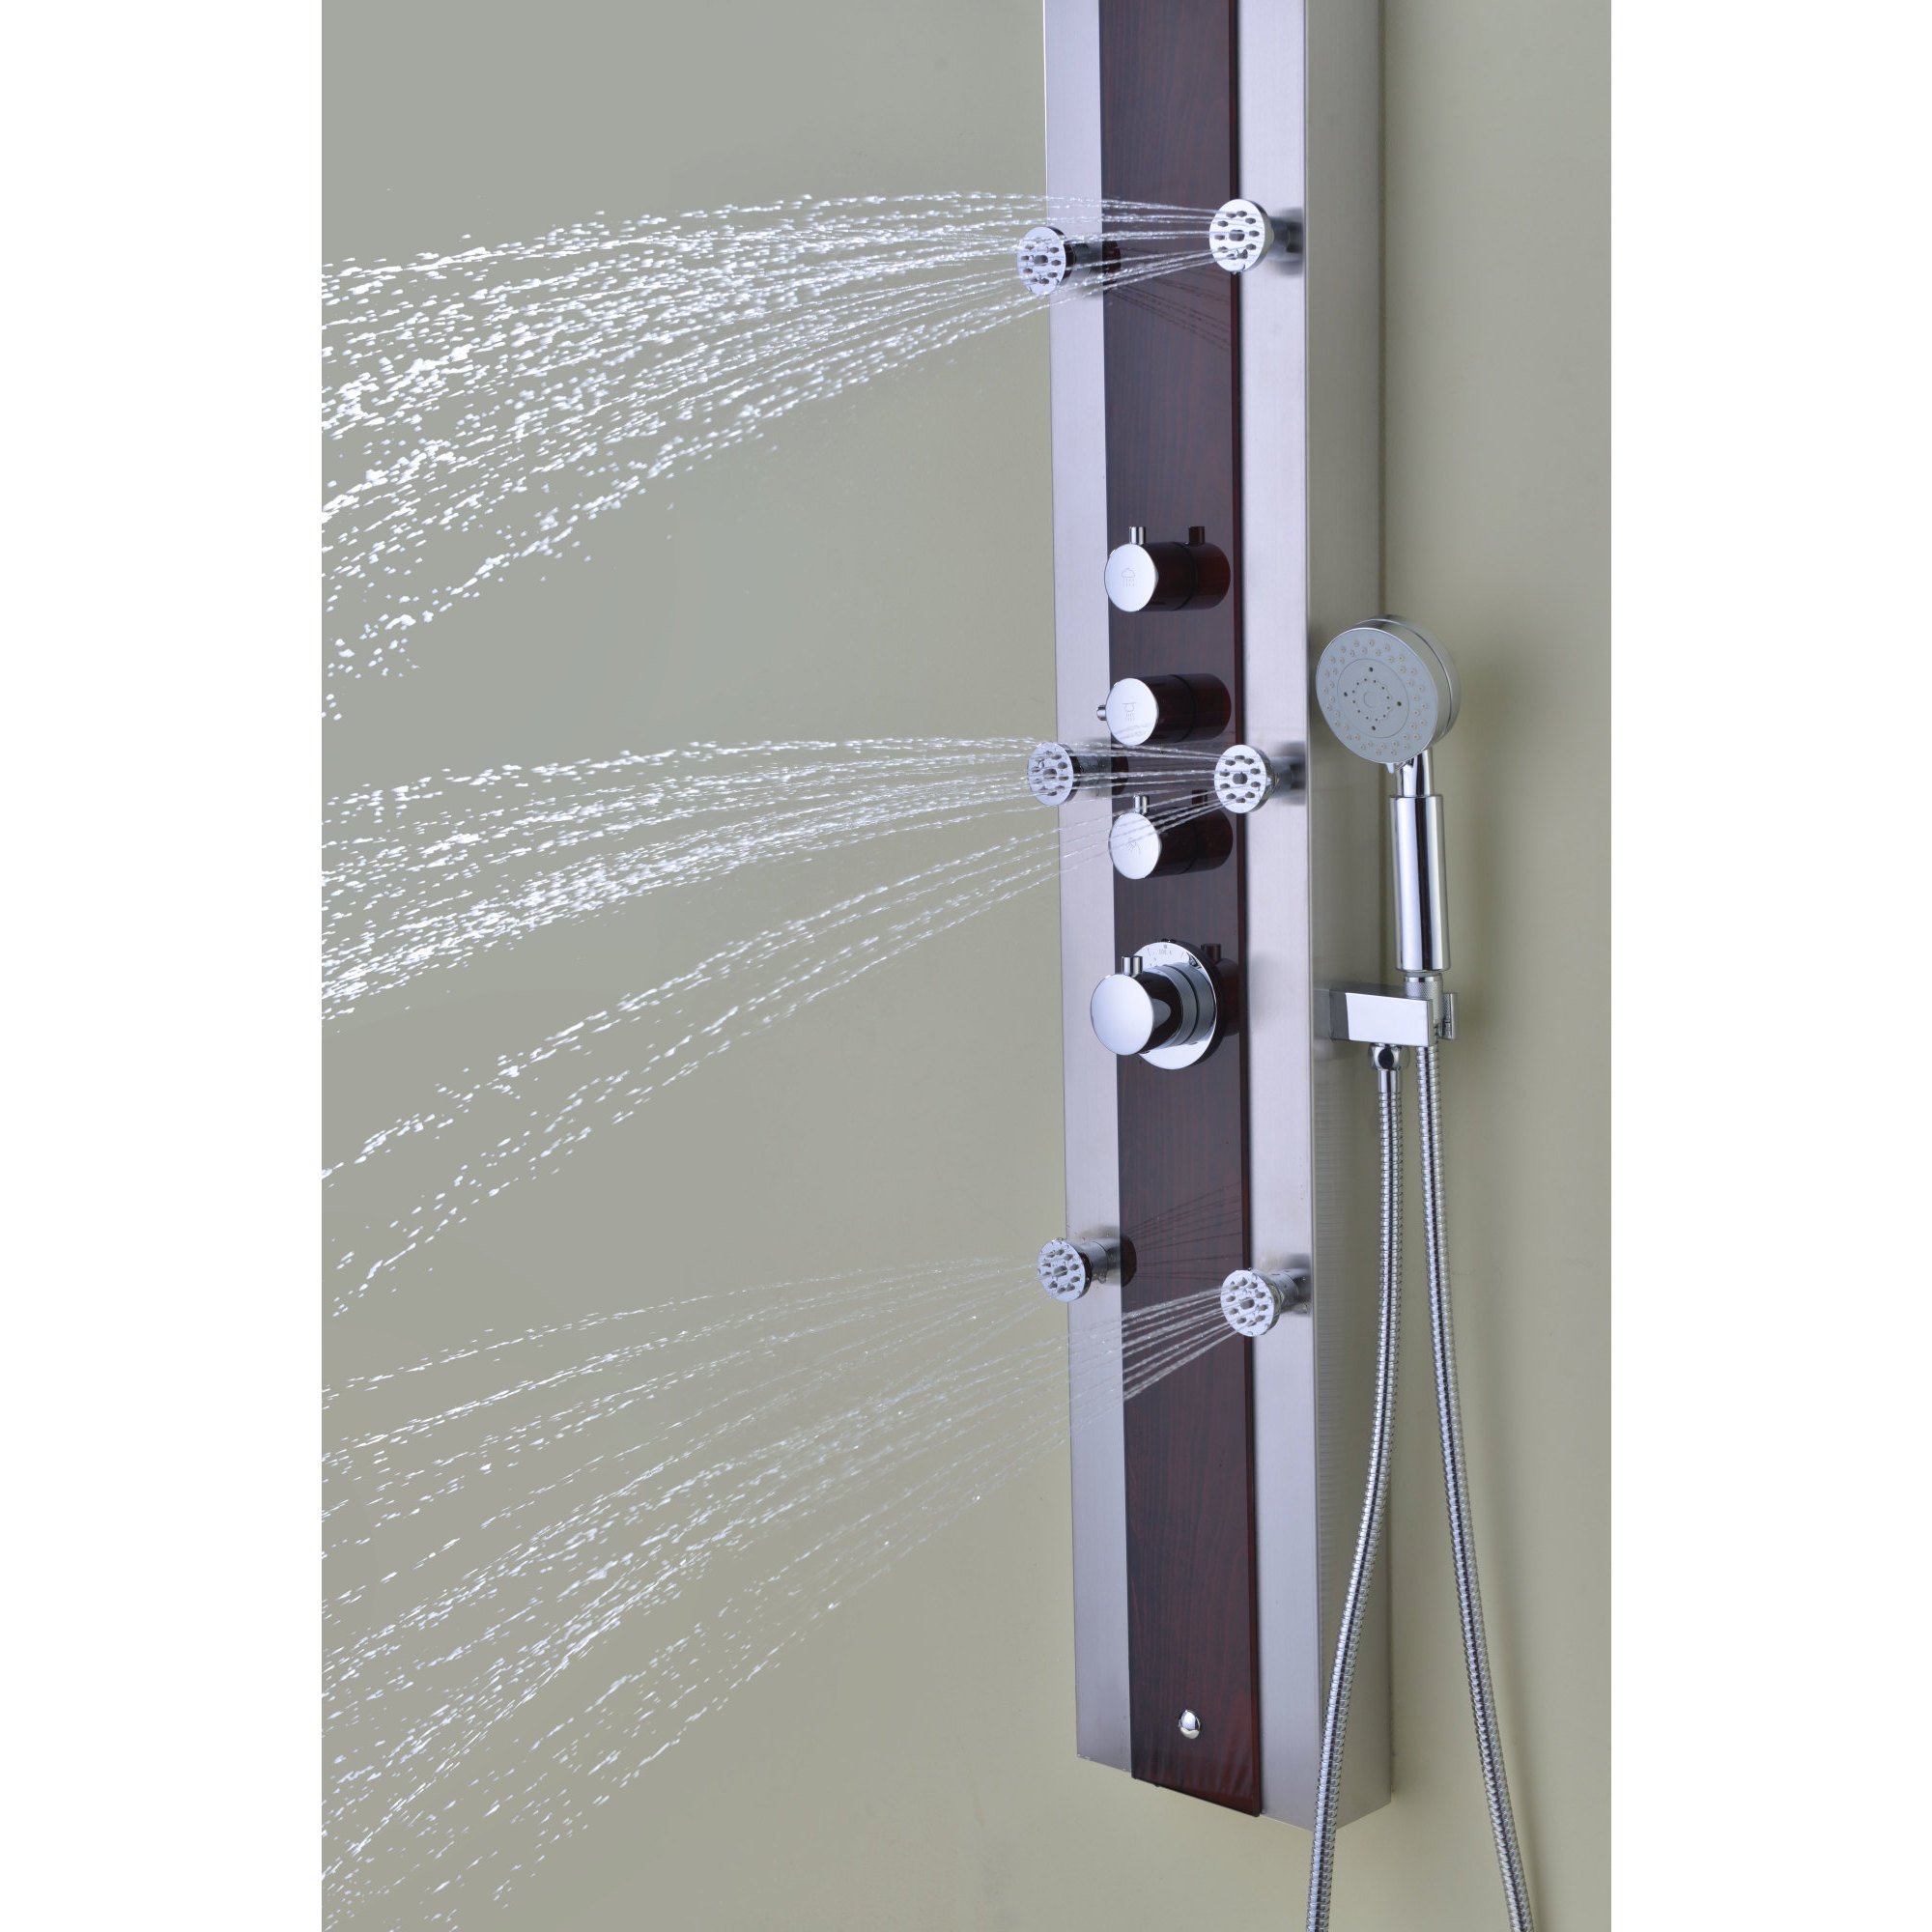 ANZZI Kiki 6-jetted Full Body Shower Panel System in Mahogany Style ...